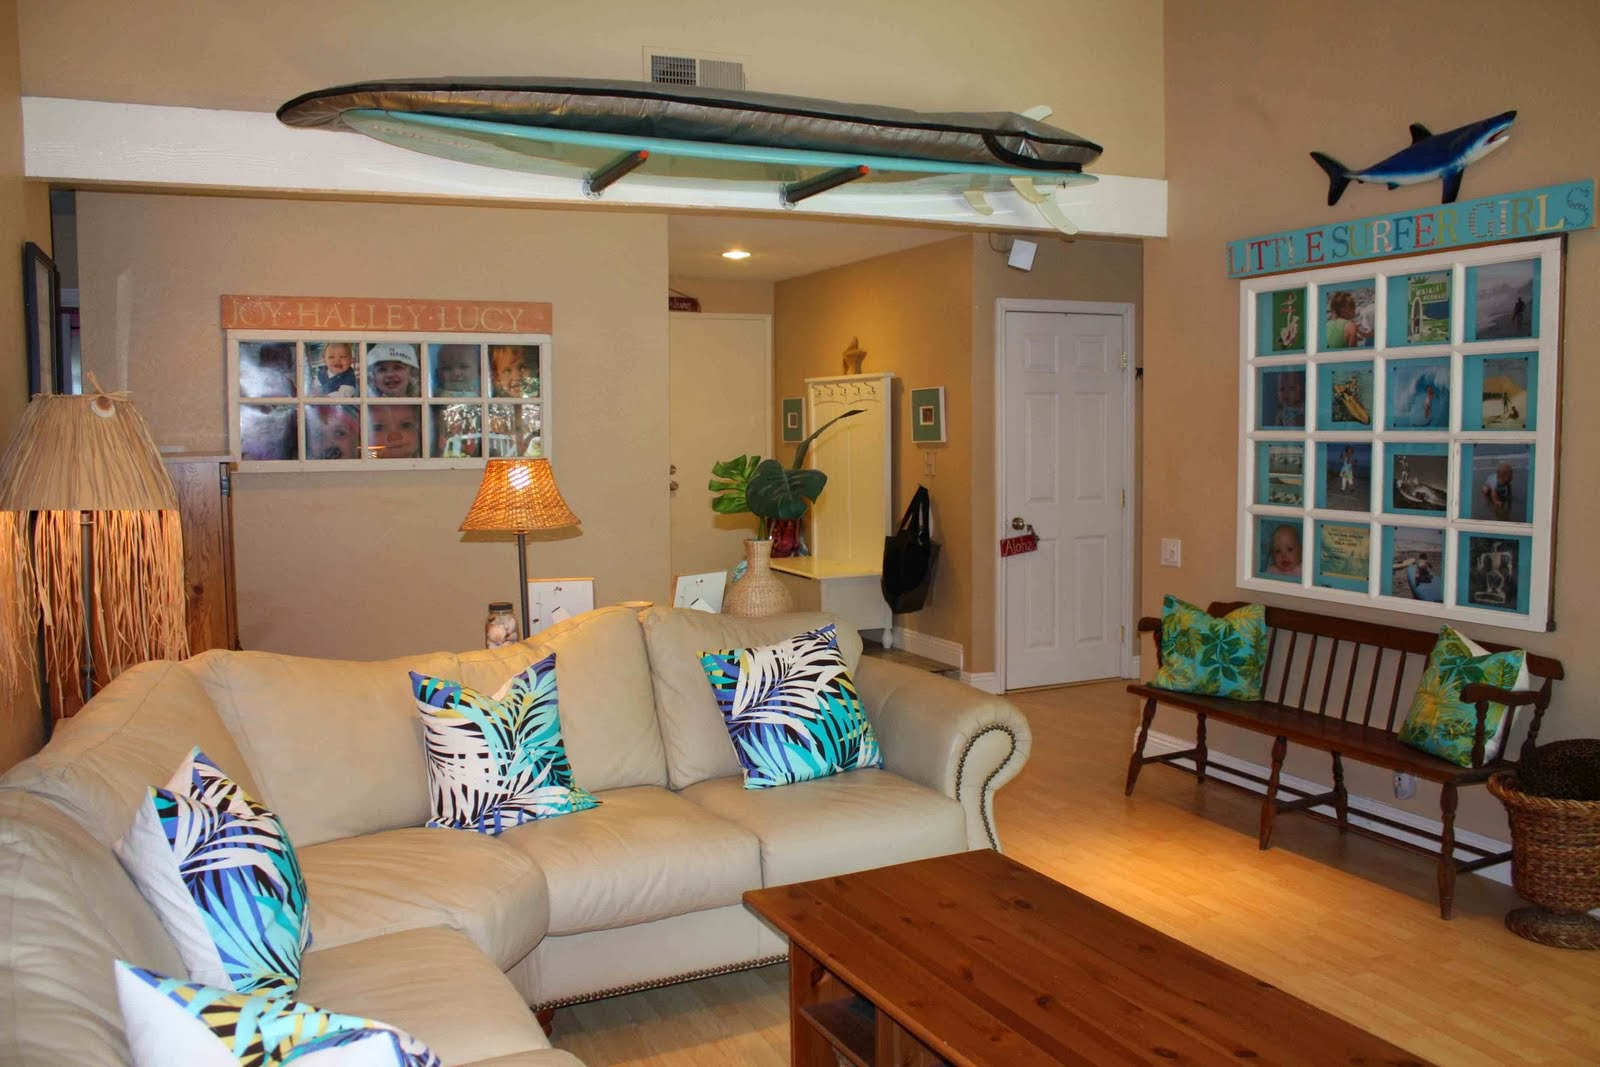 Offshore Winds Surfboard Storage In A Studio Apartment